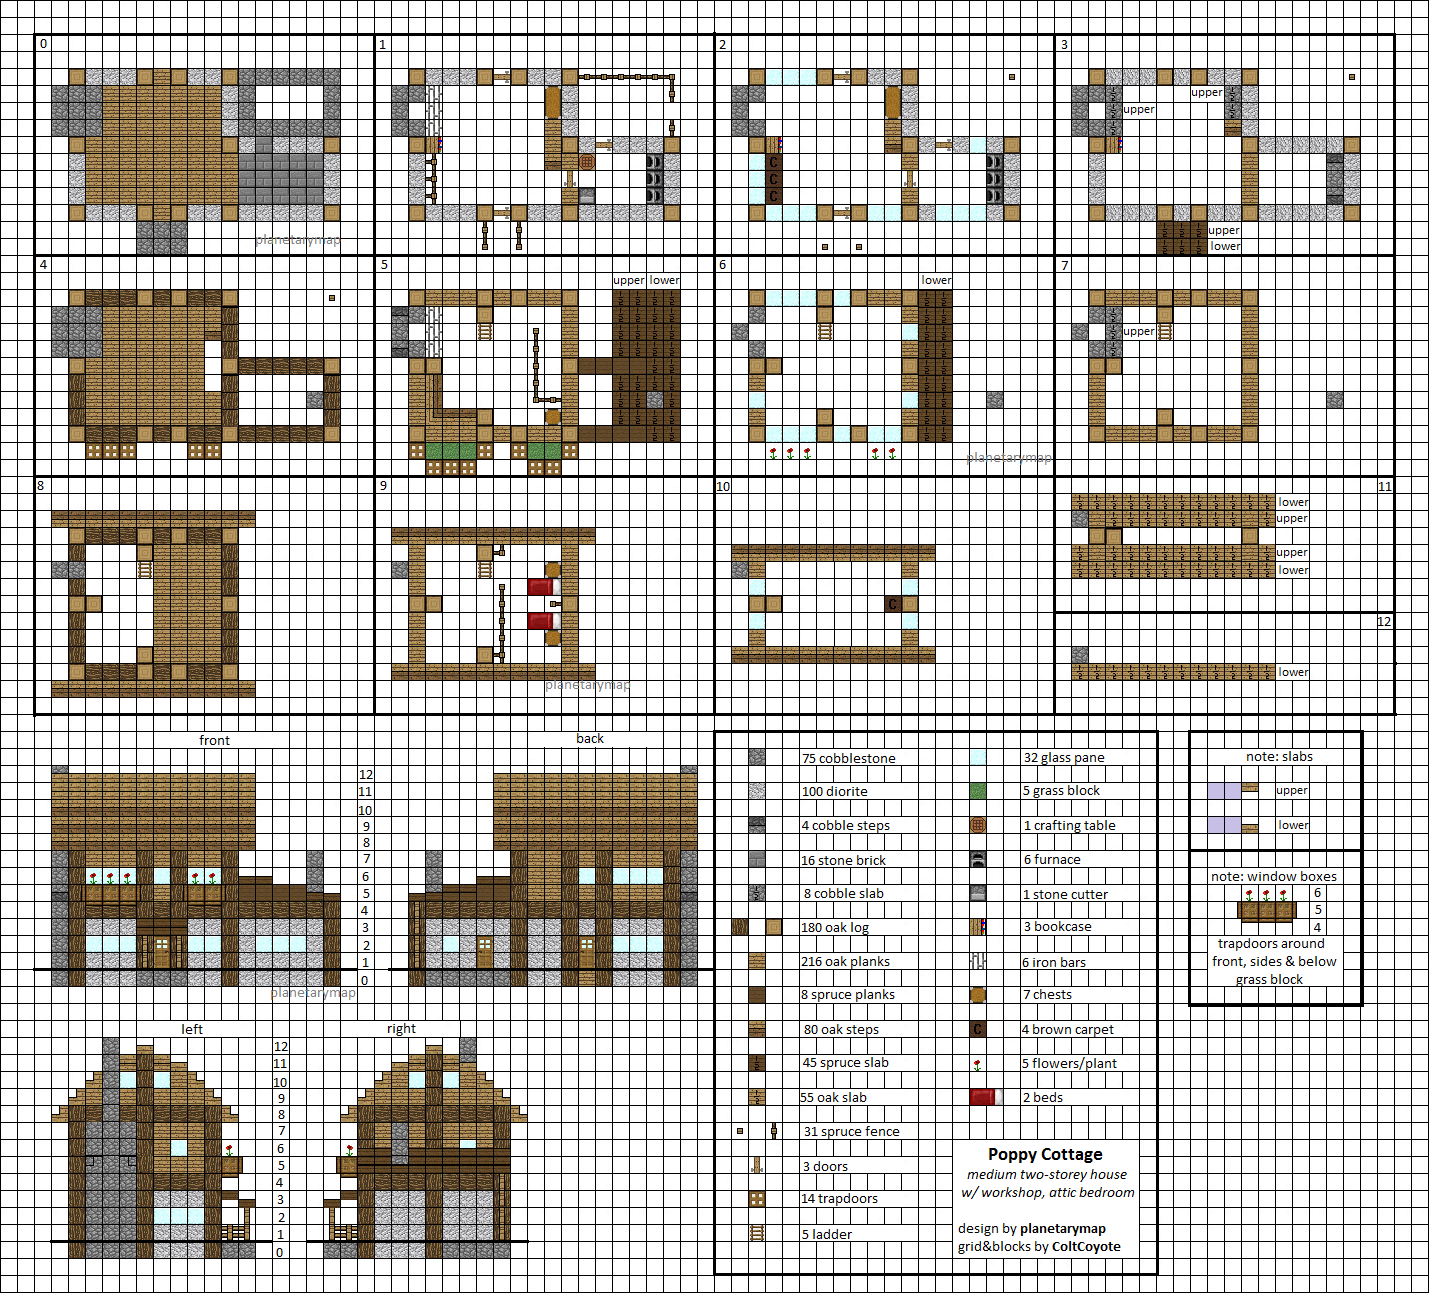 Poppy cottage medium minecraft house blueprints by planetarymap poppy cottage medium minecraft house blueprints by planetarymapiantart on deviantart malvernweather